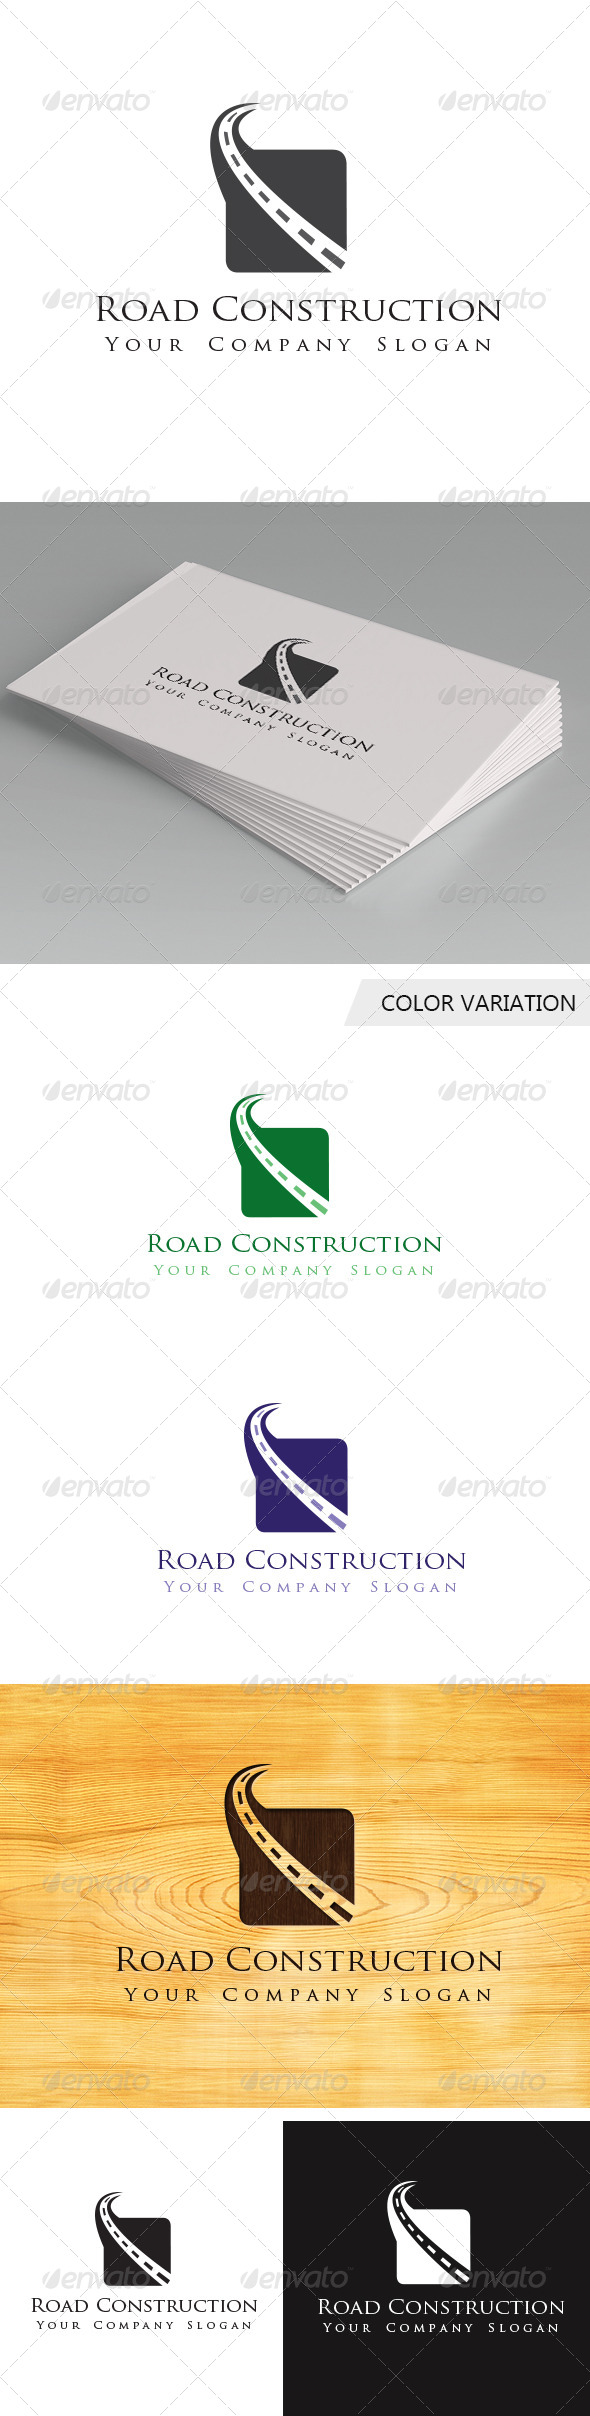 GraphicRiver Road Construction Logo Template 5638390